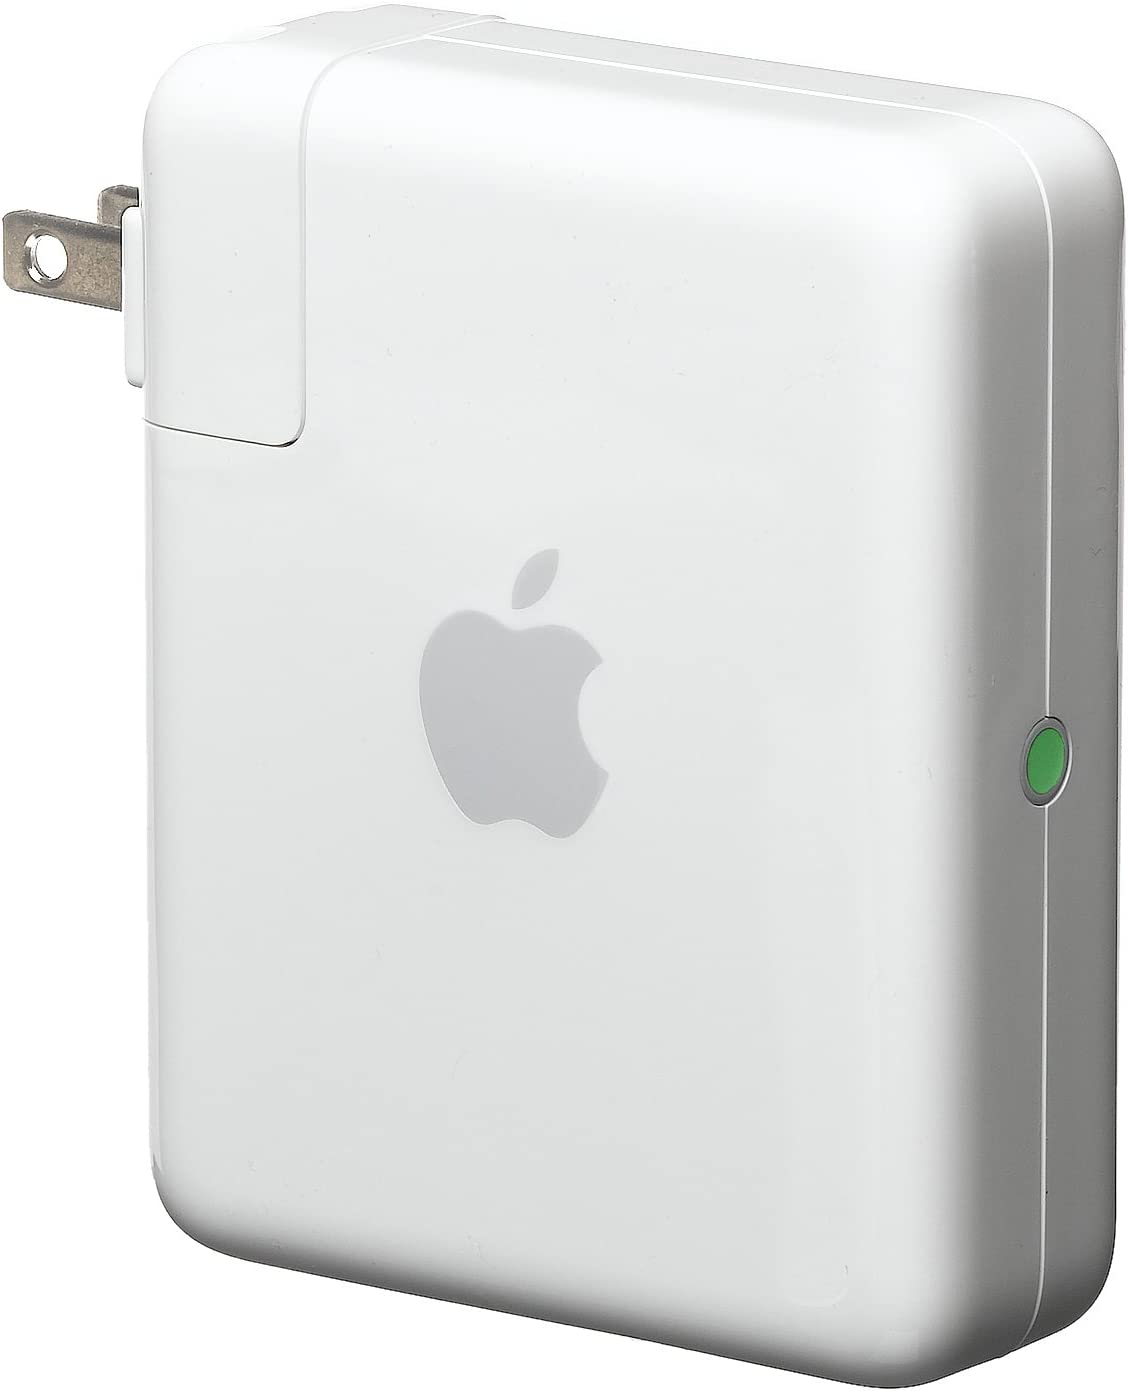 Good Used Apple Apple AirPort Express 802.11n Base Station N Router A1264